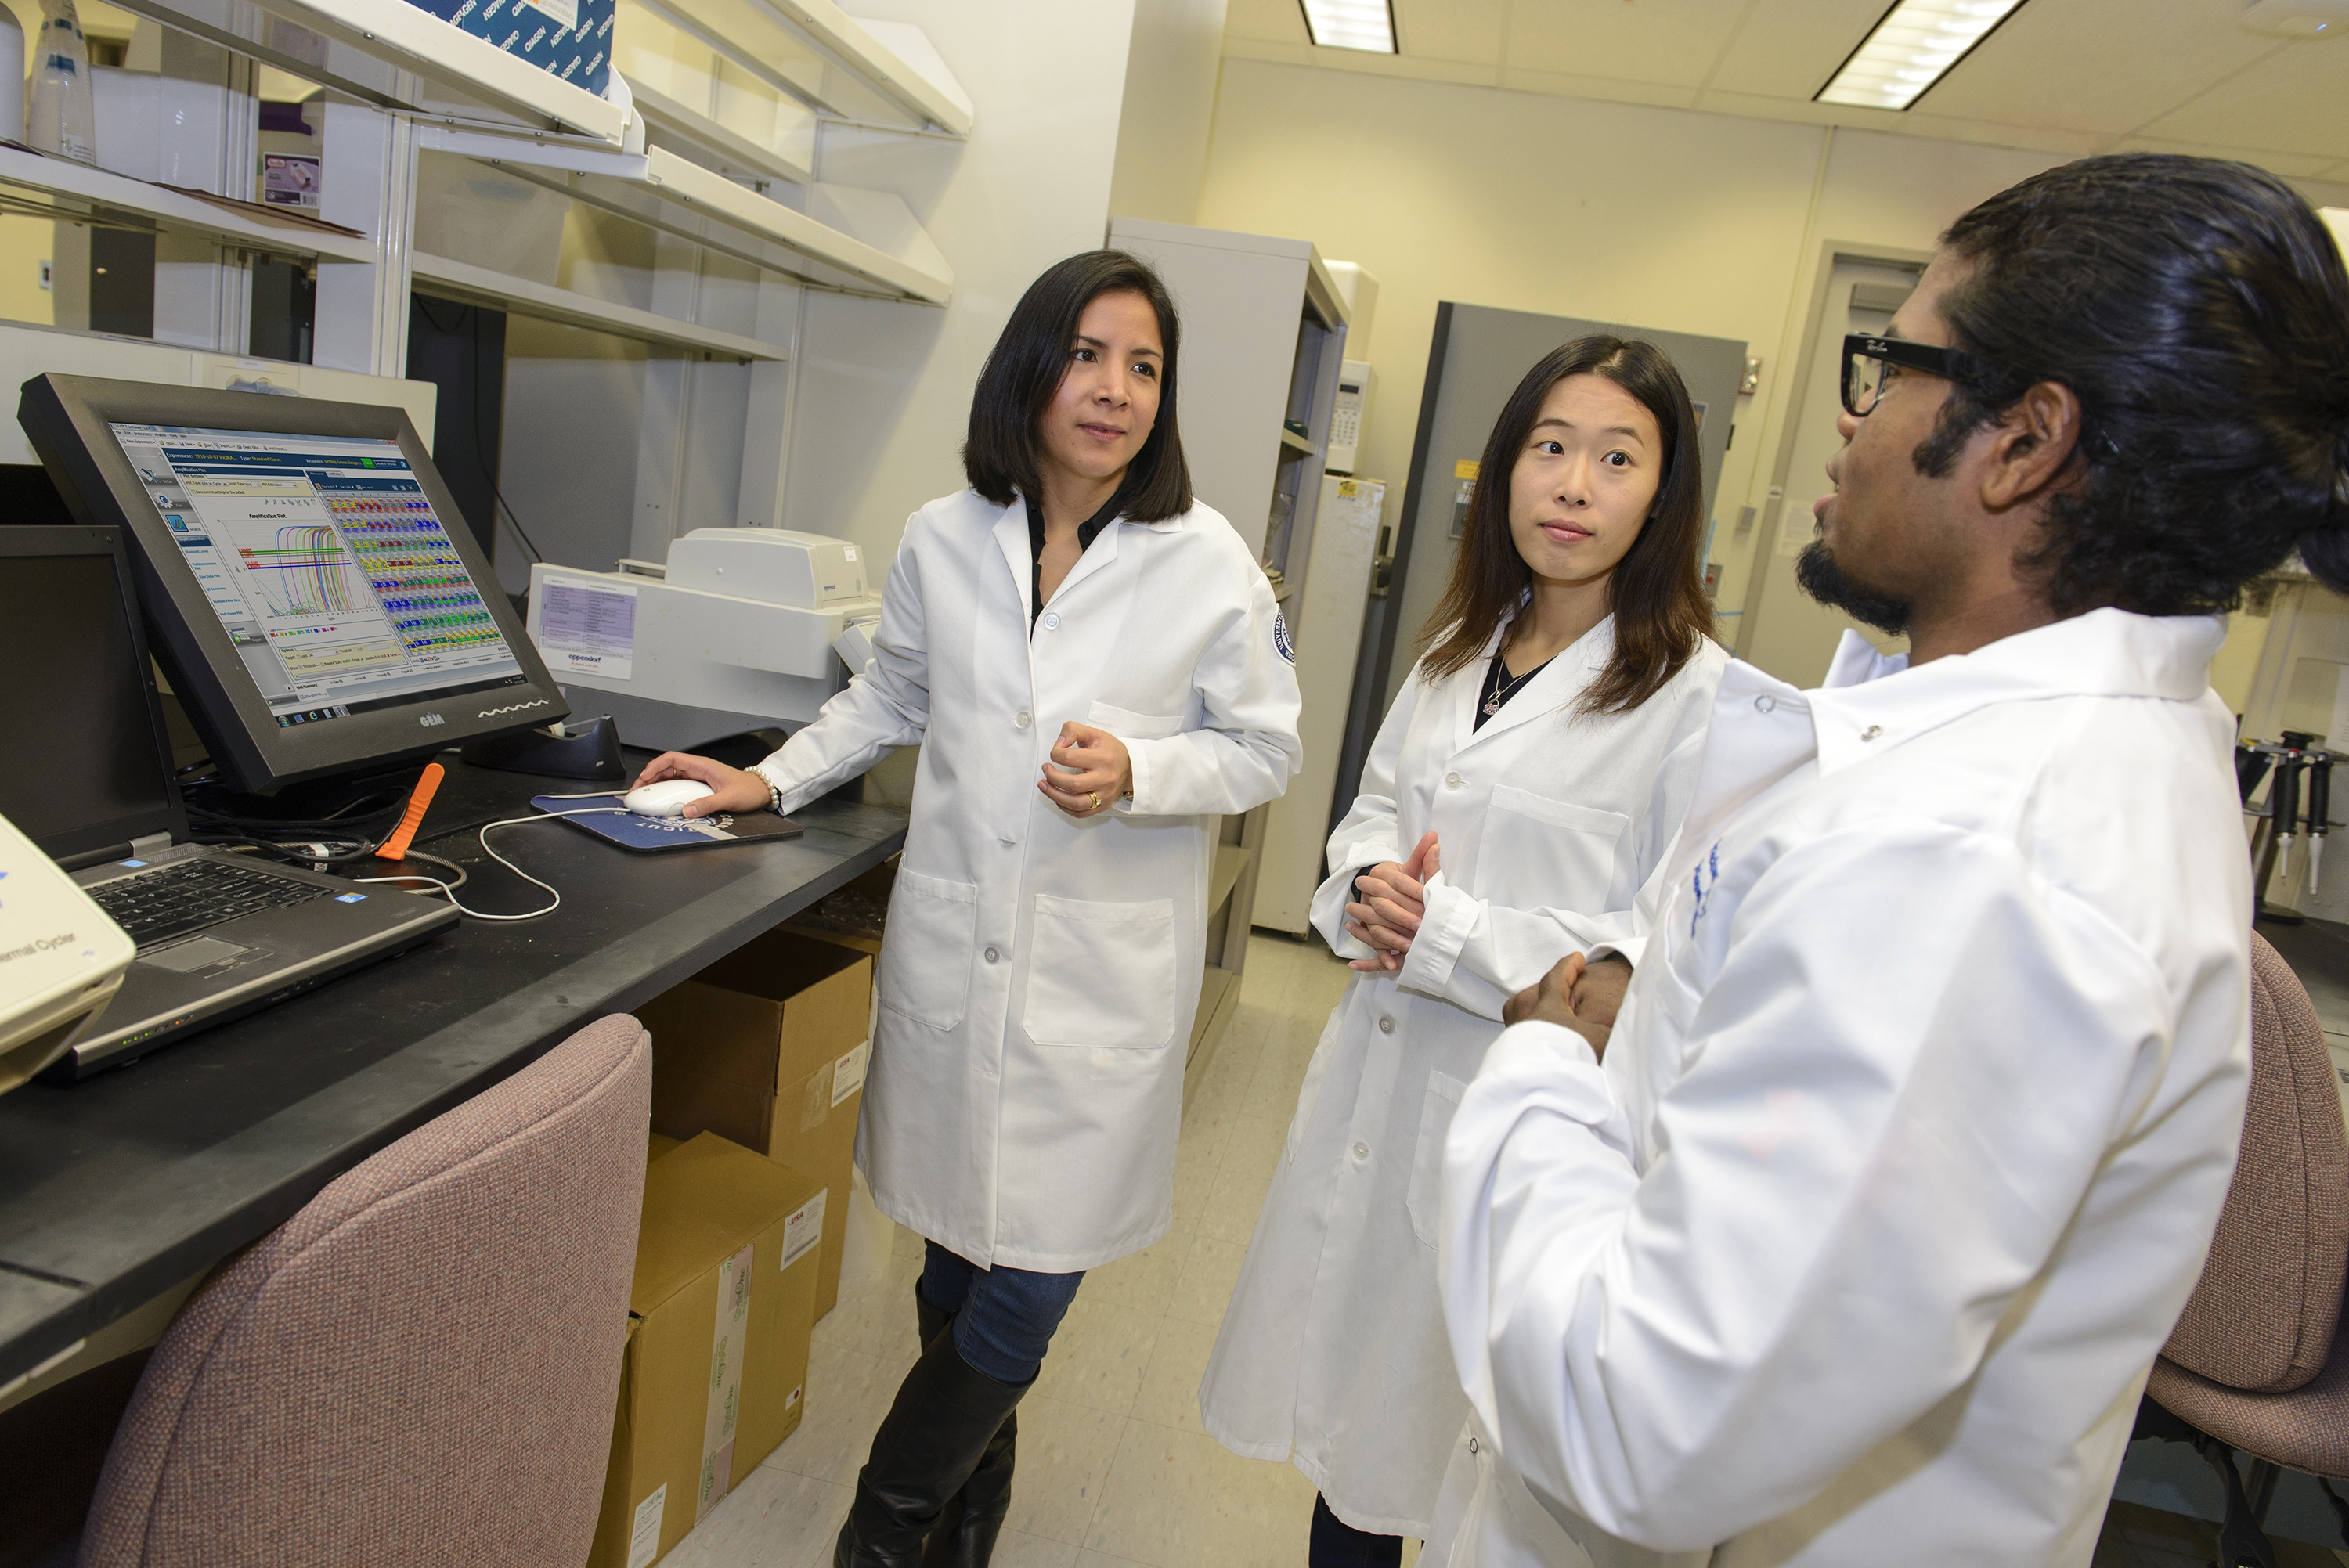 Denisse Tafur, Huakang Huang and Dinesh Babu Uthaya Kumar are UConn Graduate School students studying biomedical science who completed advanced training in translational research at the NIH's Clinical Center this summer.